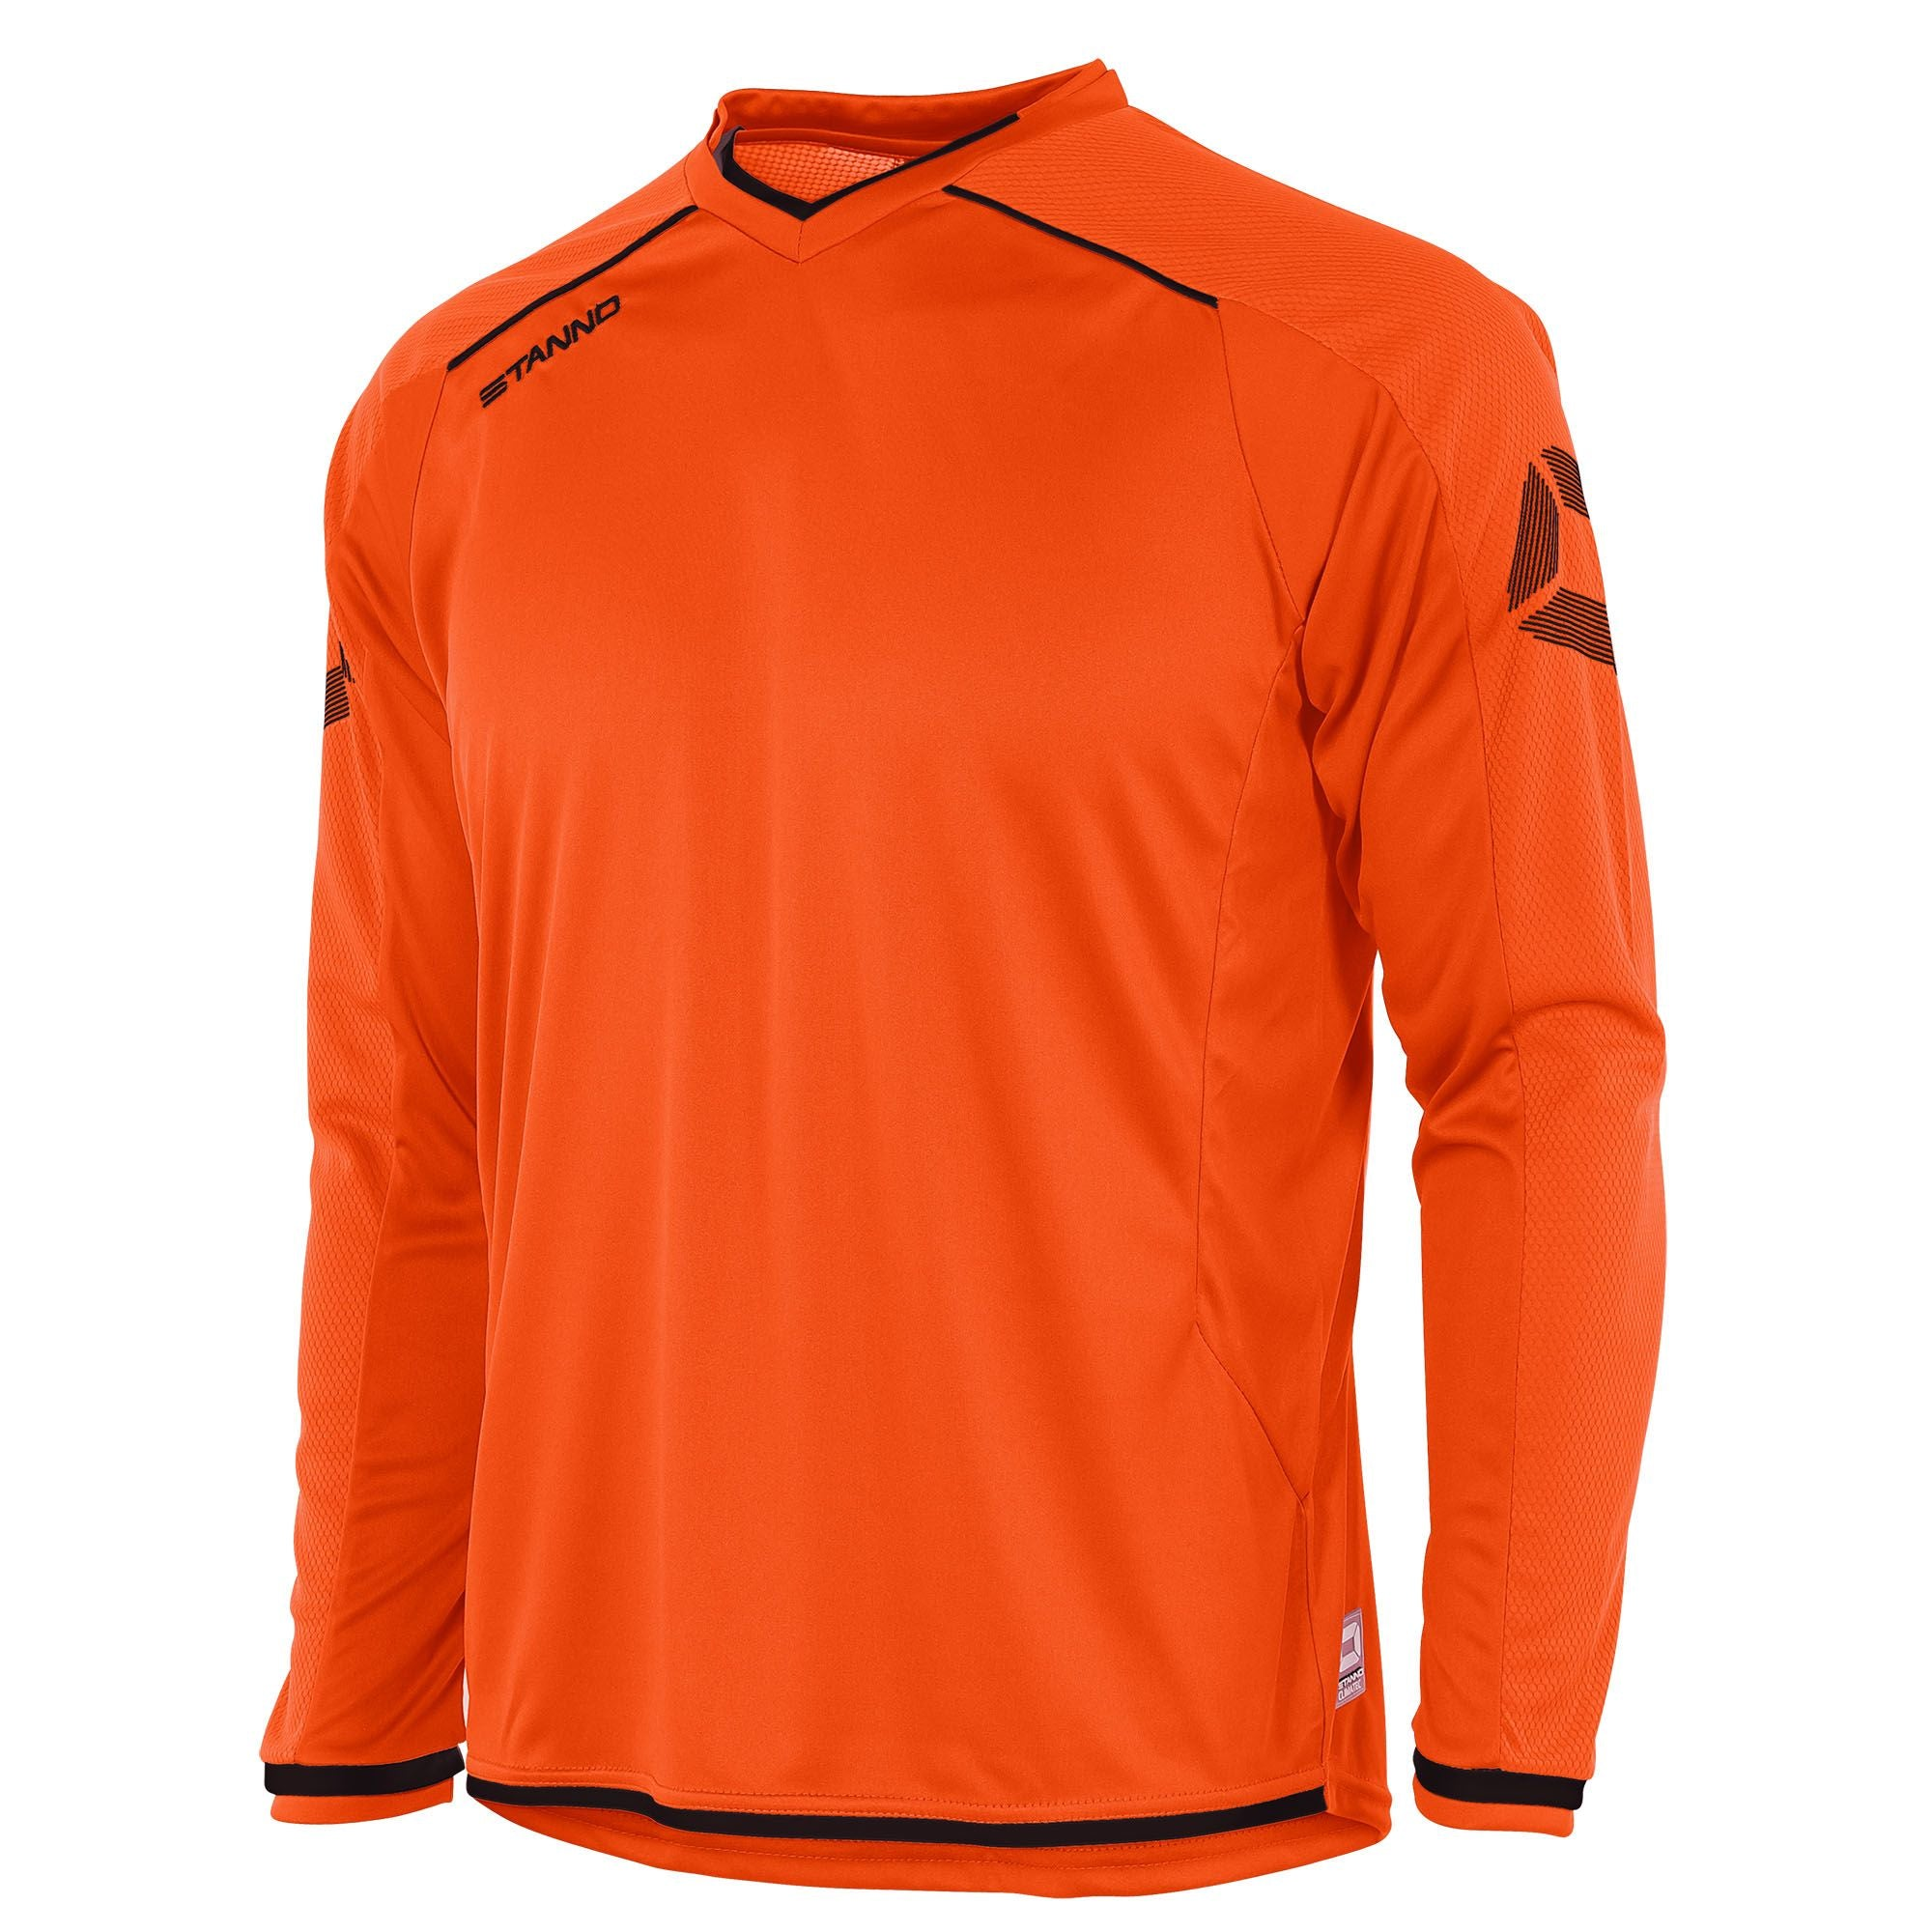 Stanno Futura long sleeve shirt in orange with fine black contrast detailing across the shoulders, collar, cuff and hem.